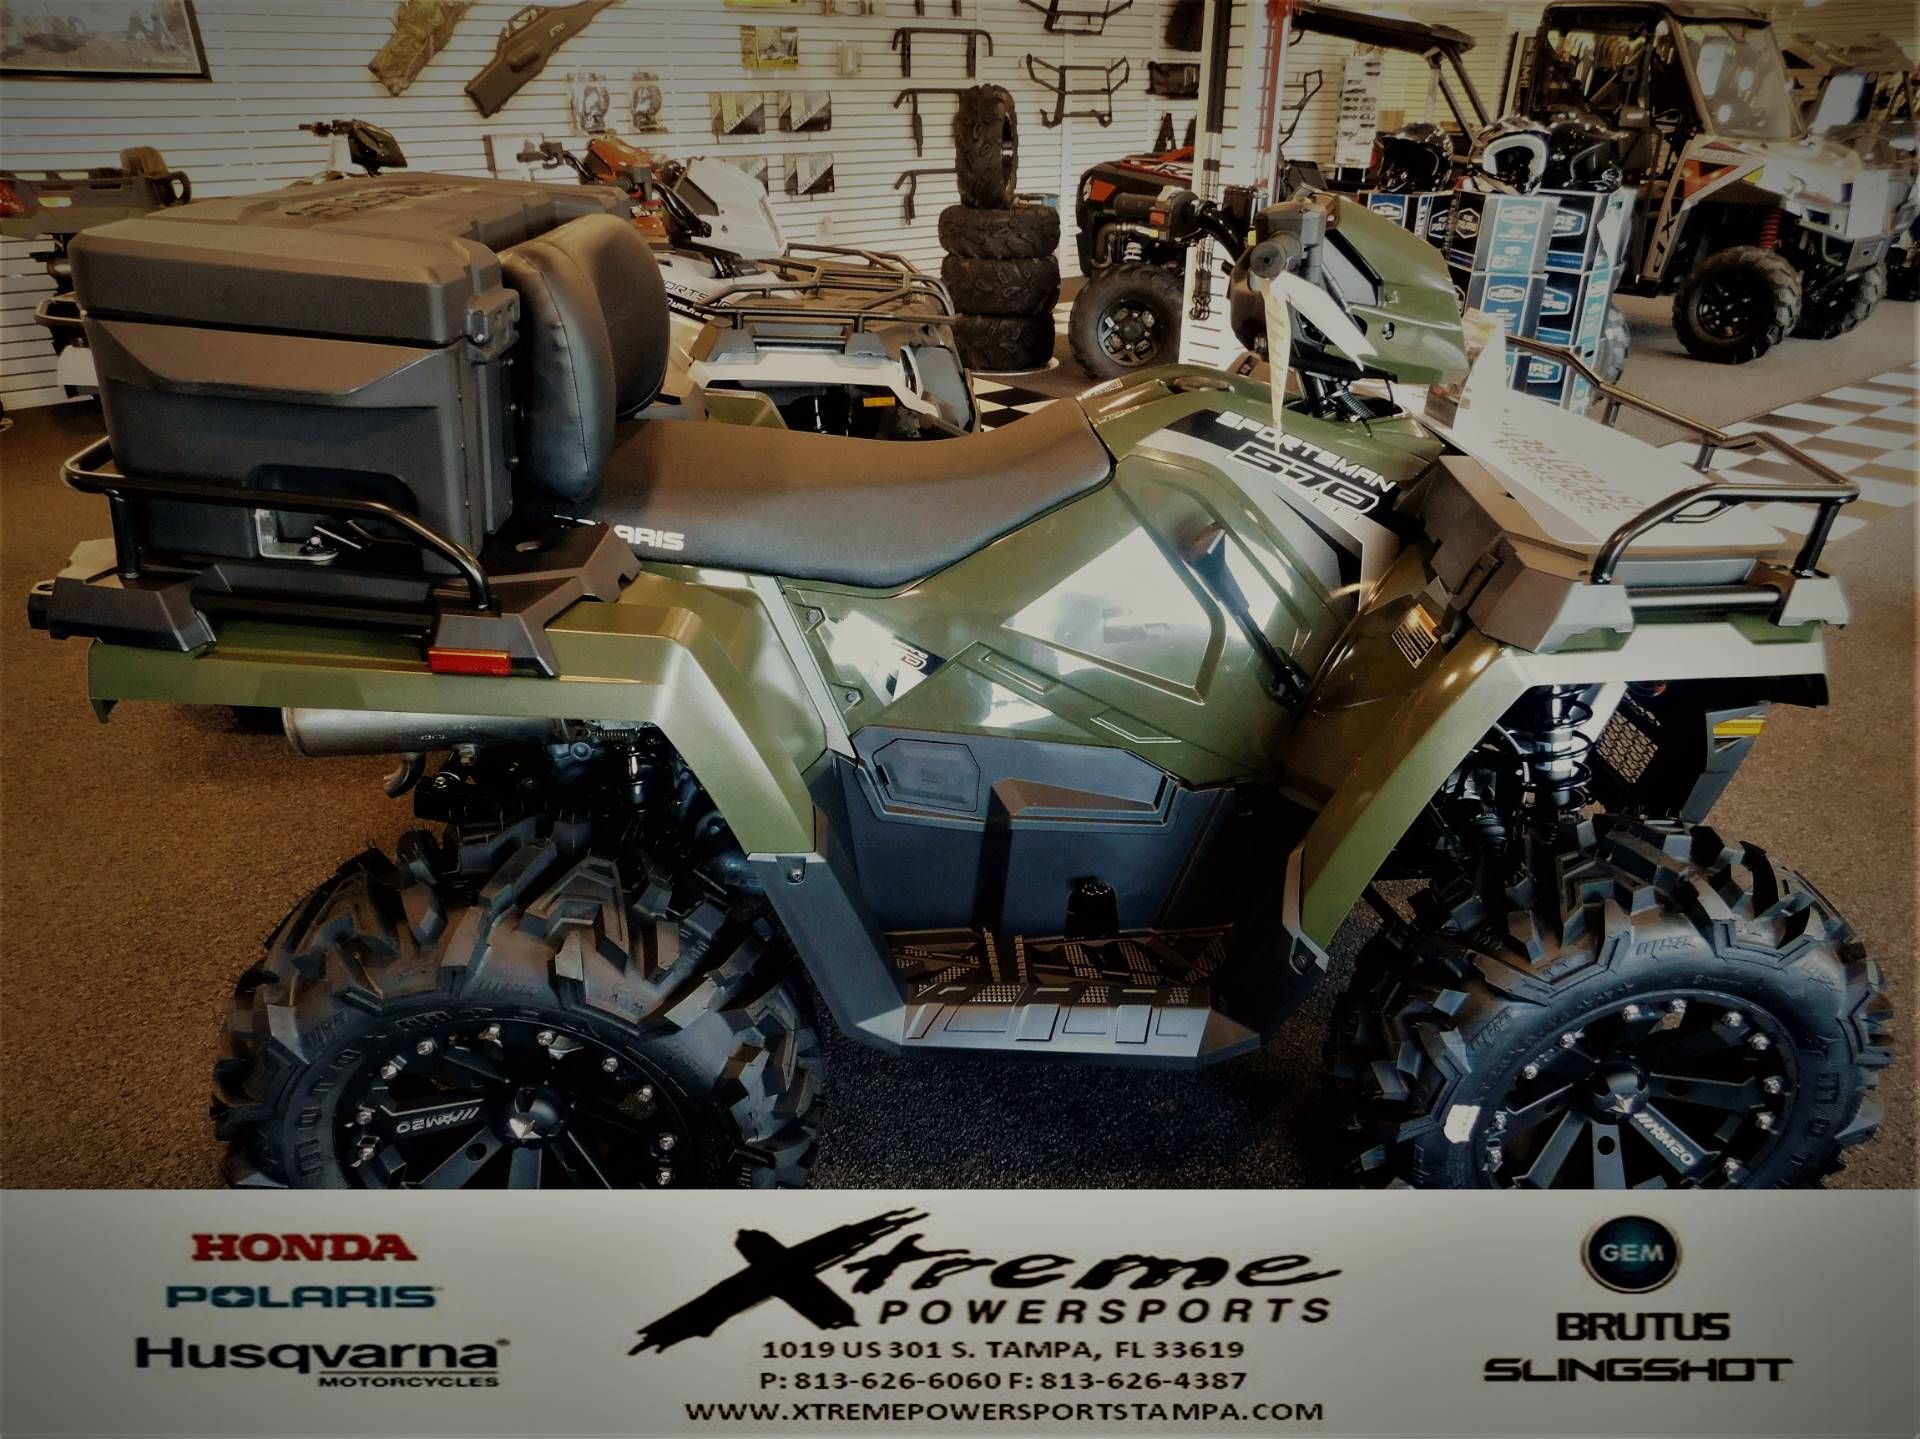 2019 Polaris sportsman 570 in Tampa, Florida